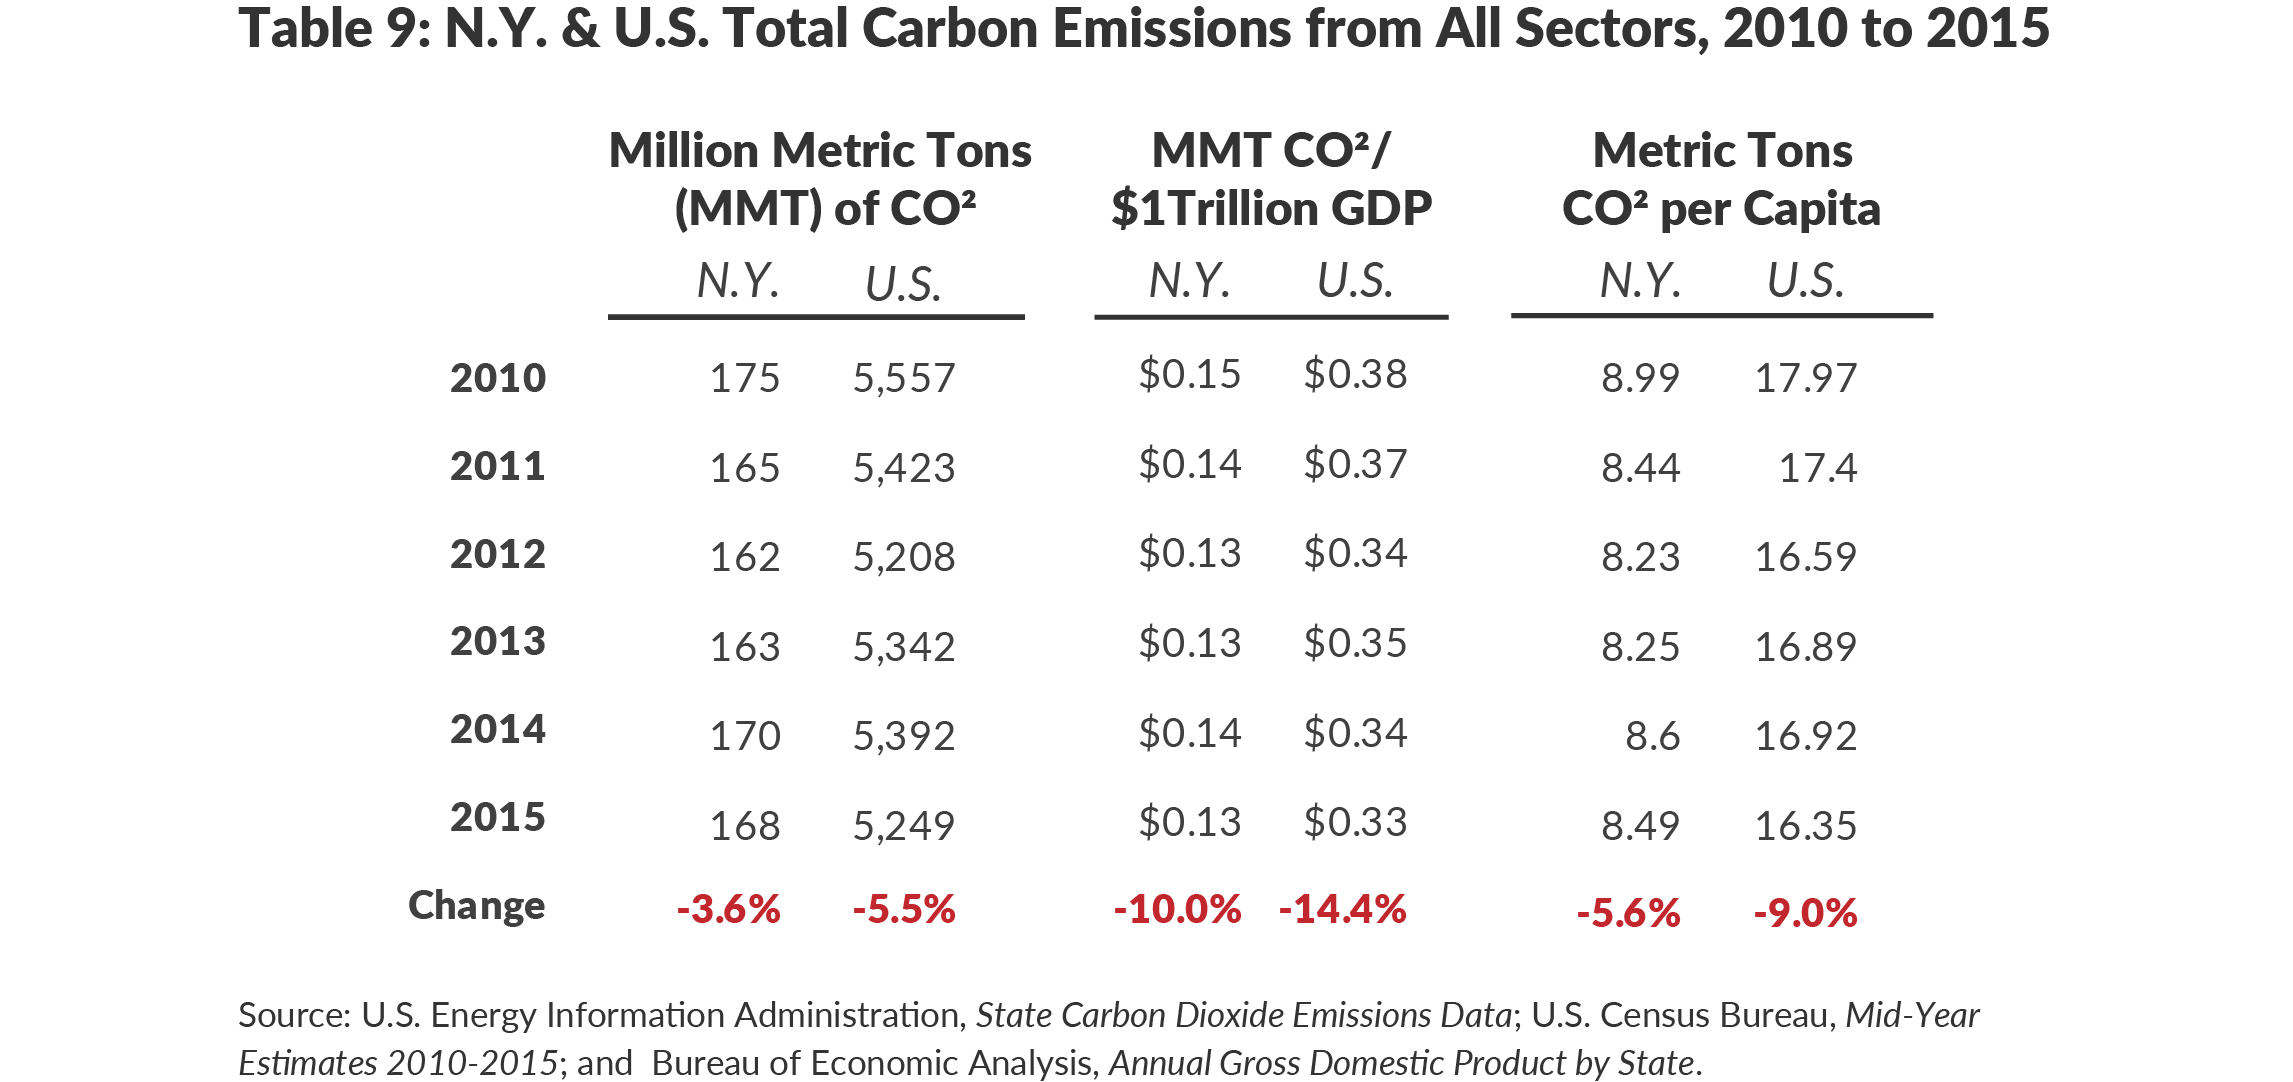 Table 9: N.Y. & U.S. Total Carbon Emissions from All Sectors, 2010 to 2015